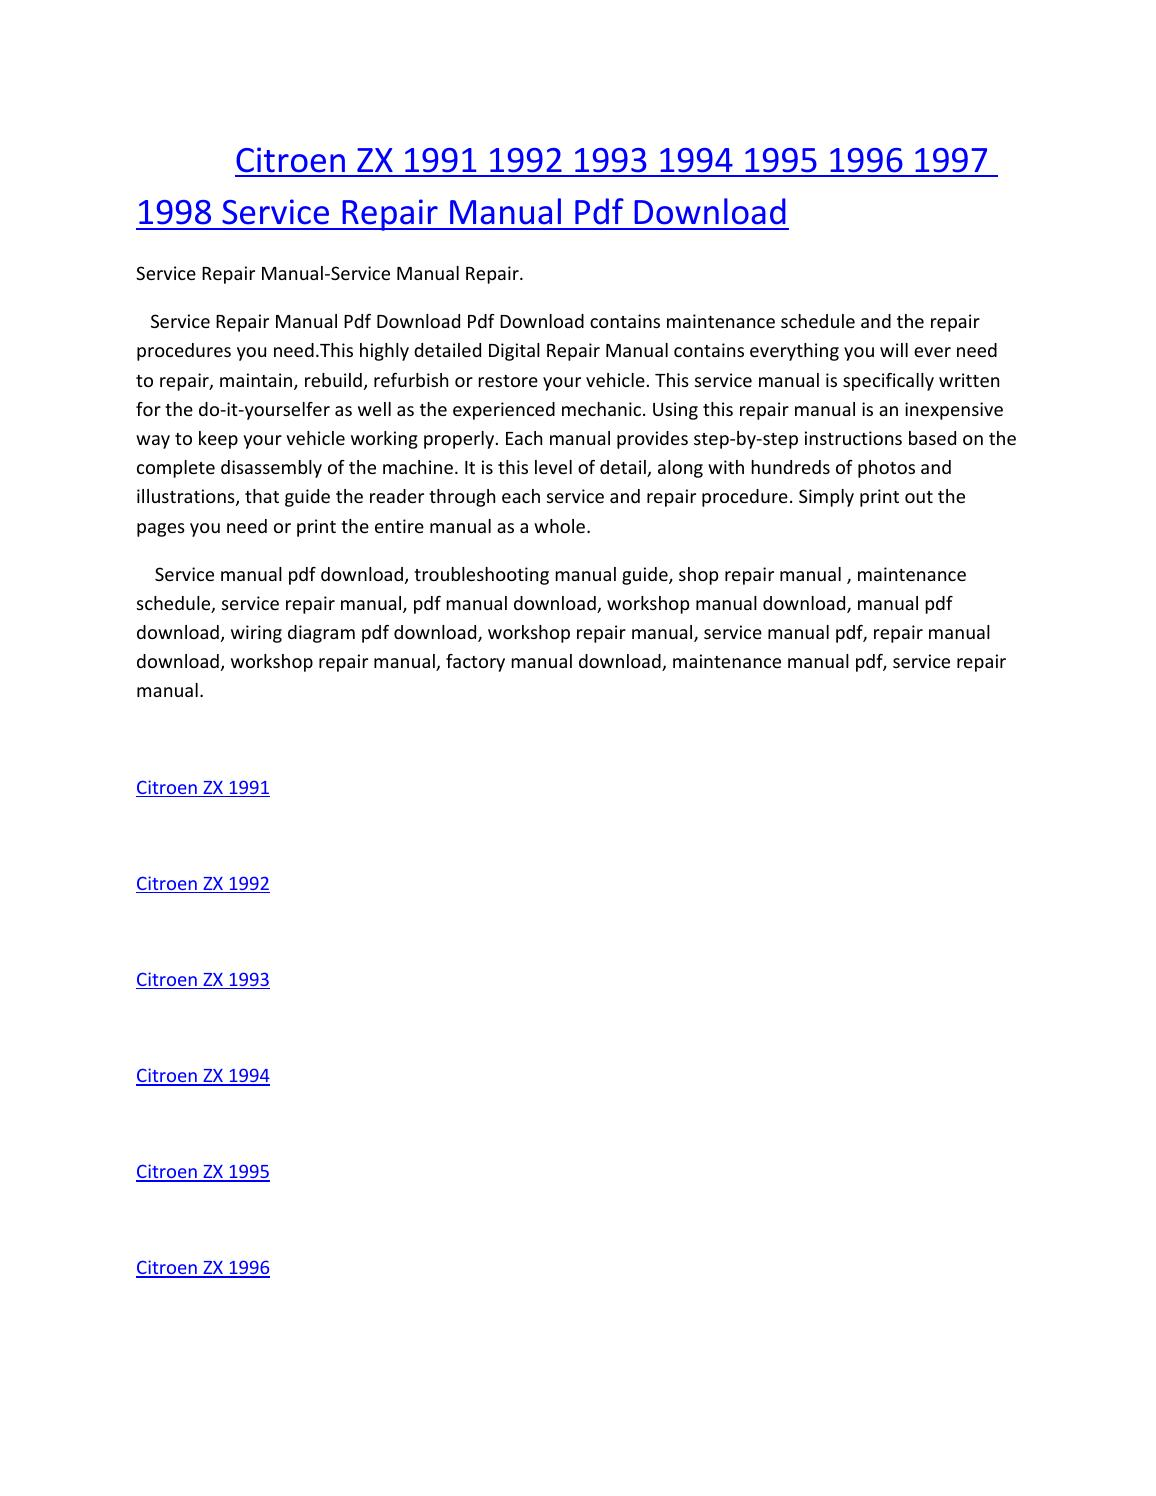 Citroen zx 1991 1992 1993 1994 1995 1996 1997 1998 service manual repair pdf  download by amurgului - issuu